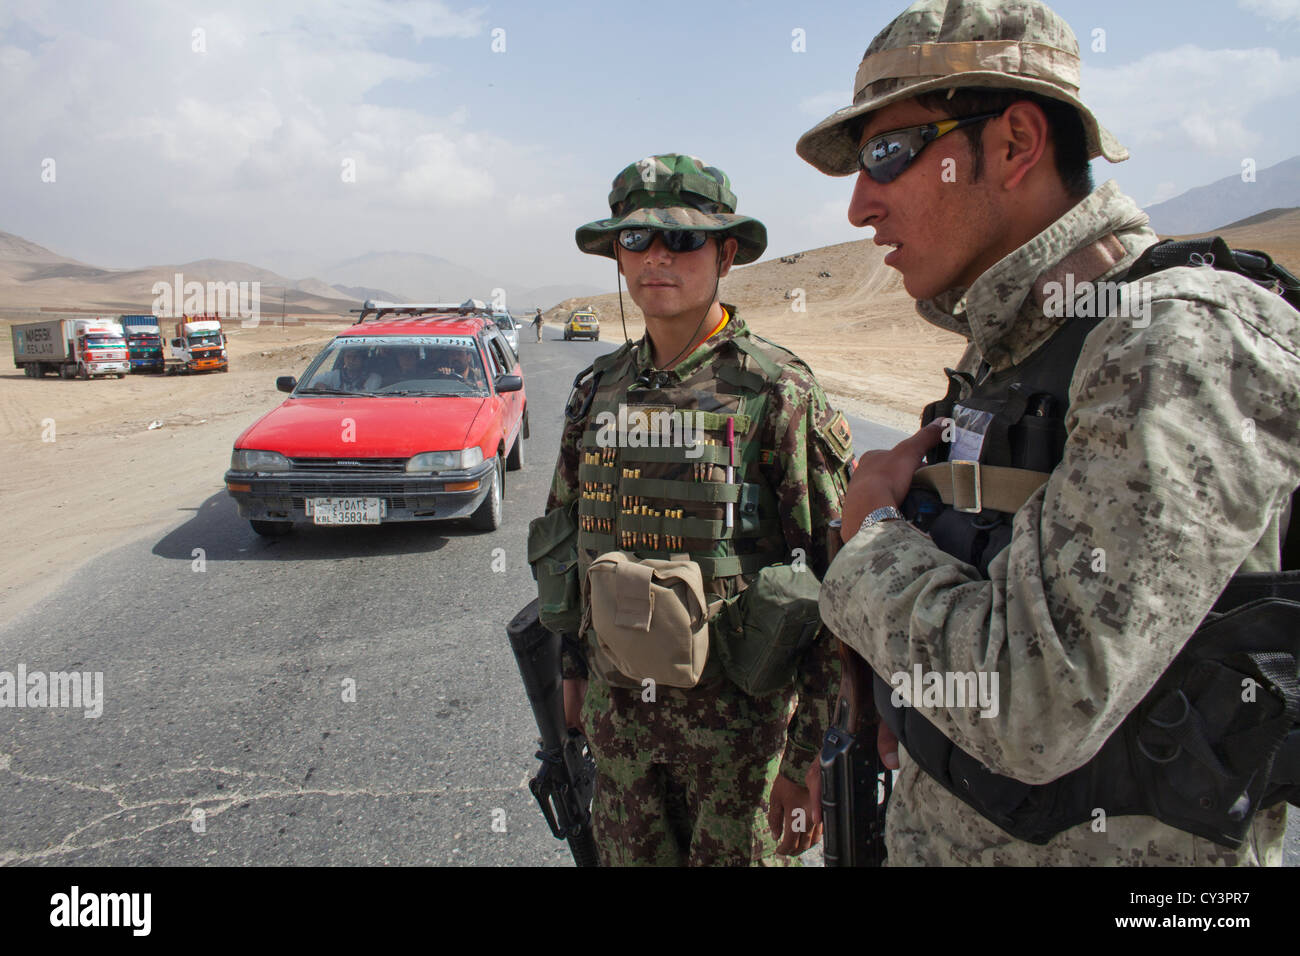 Afghan police and military checkpoint looking for suspected terrorists - Stock Image